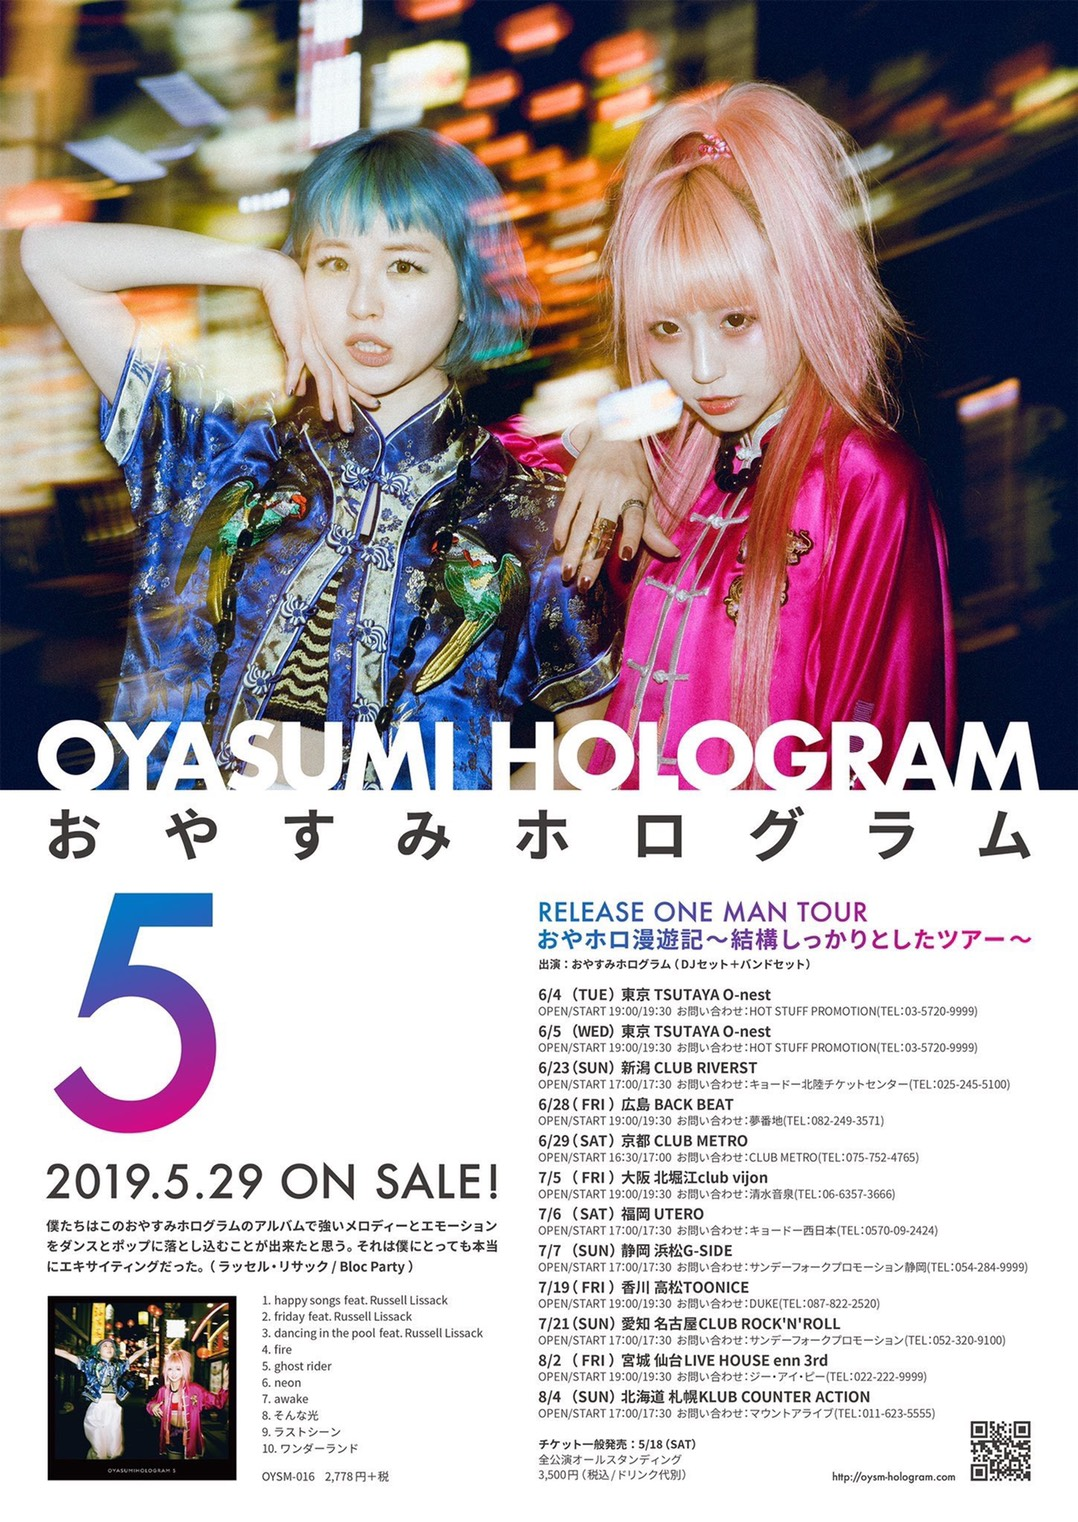 OYASUMI HOLOGRAM RELEASE ONE MAN TOUR